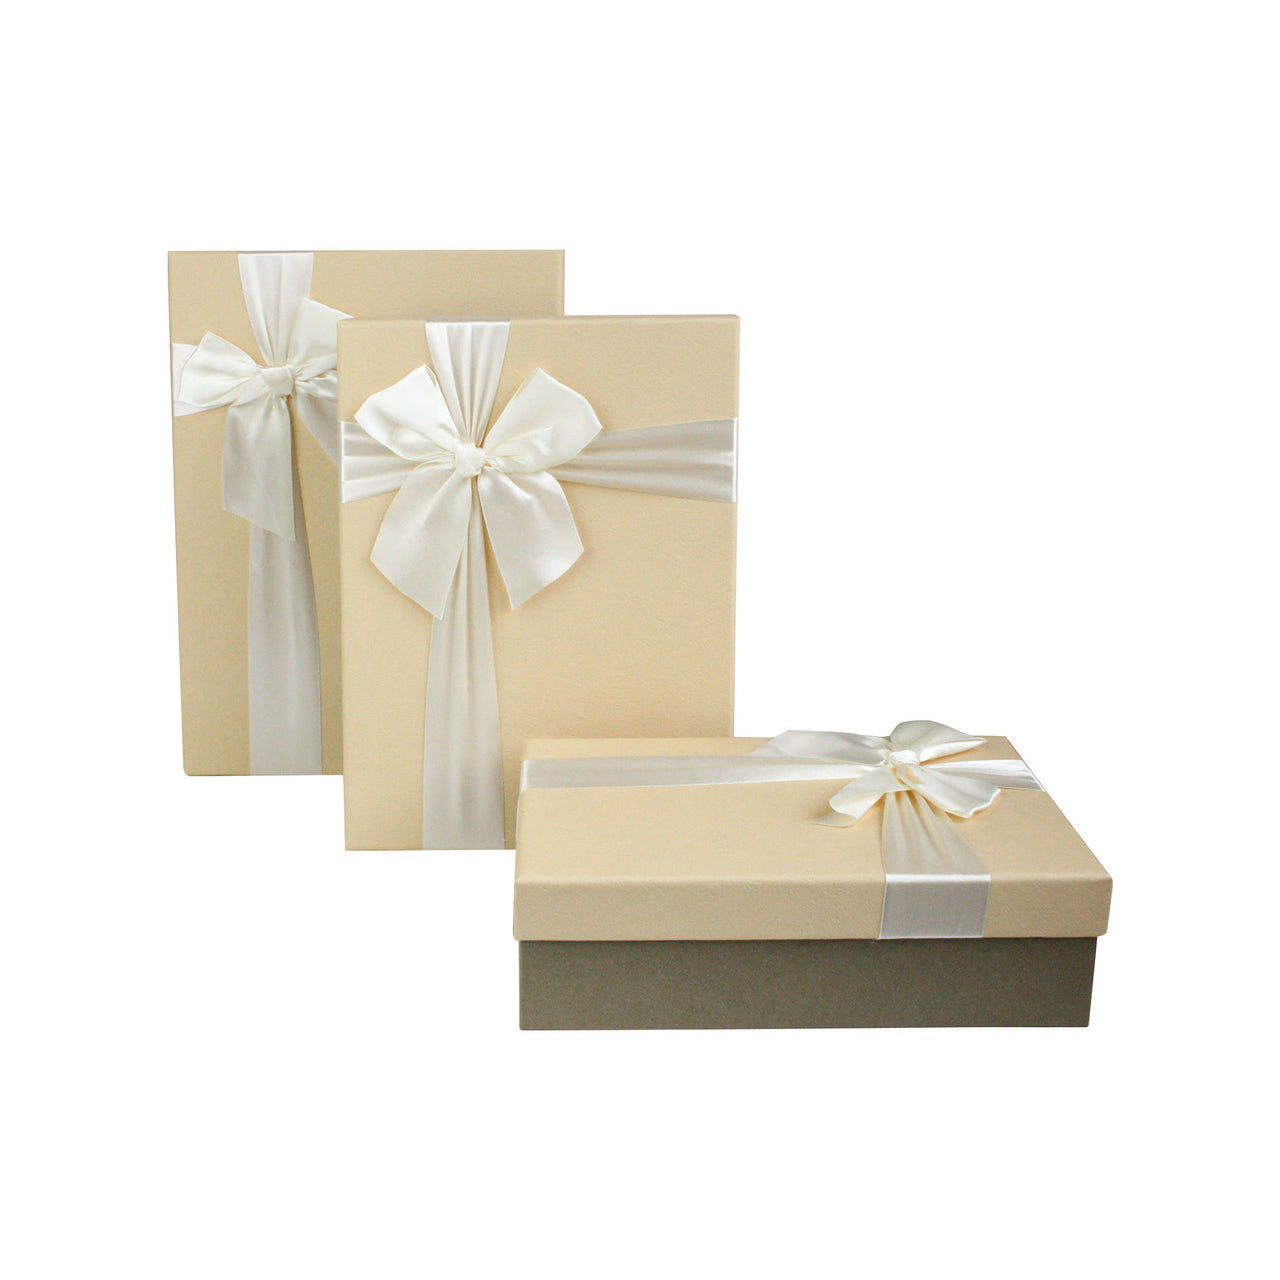 Khaki Cream with Bow Gift Box - Set Of 3